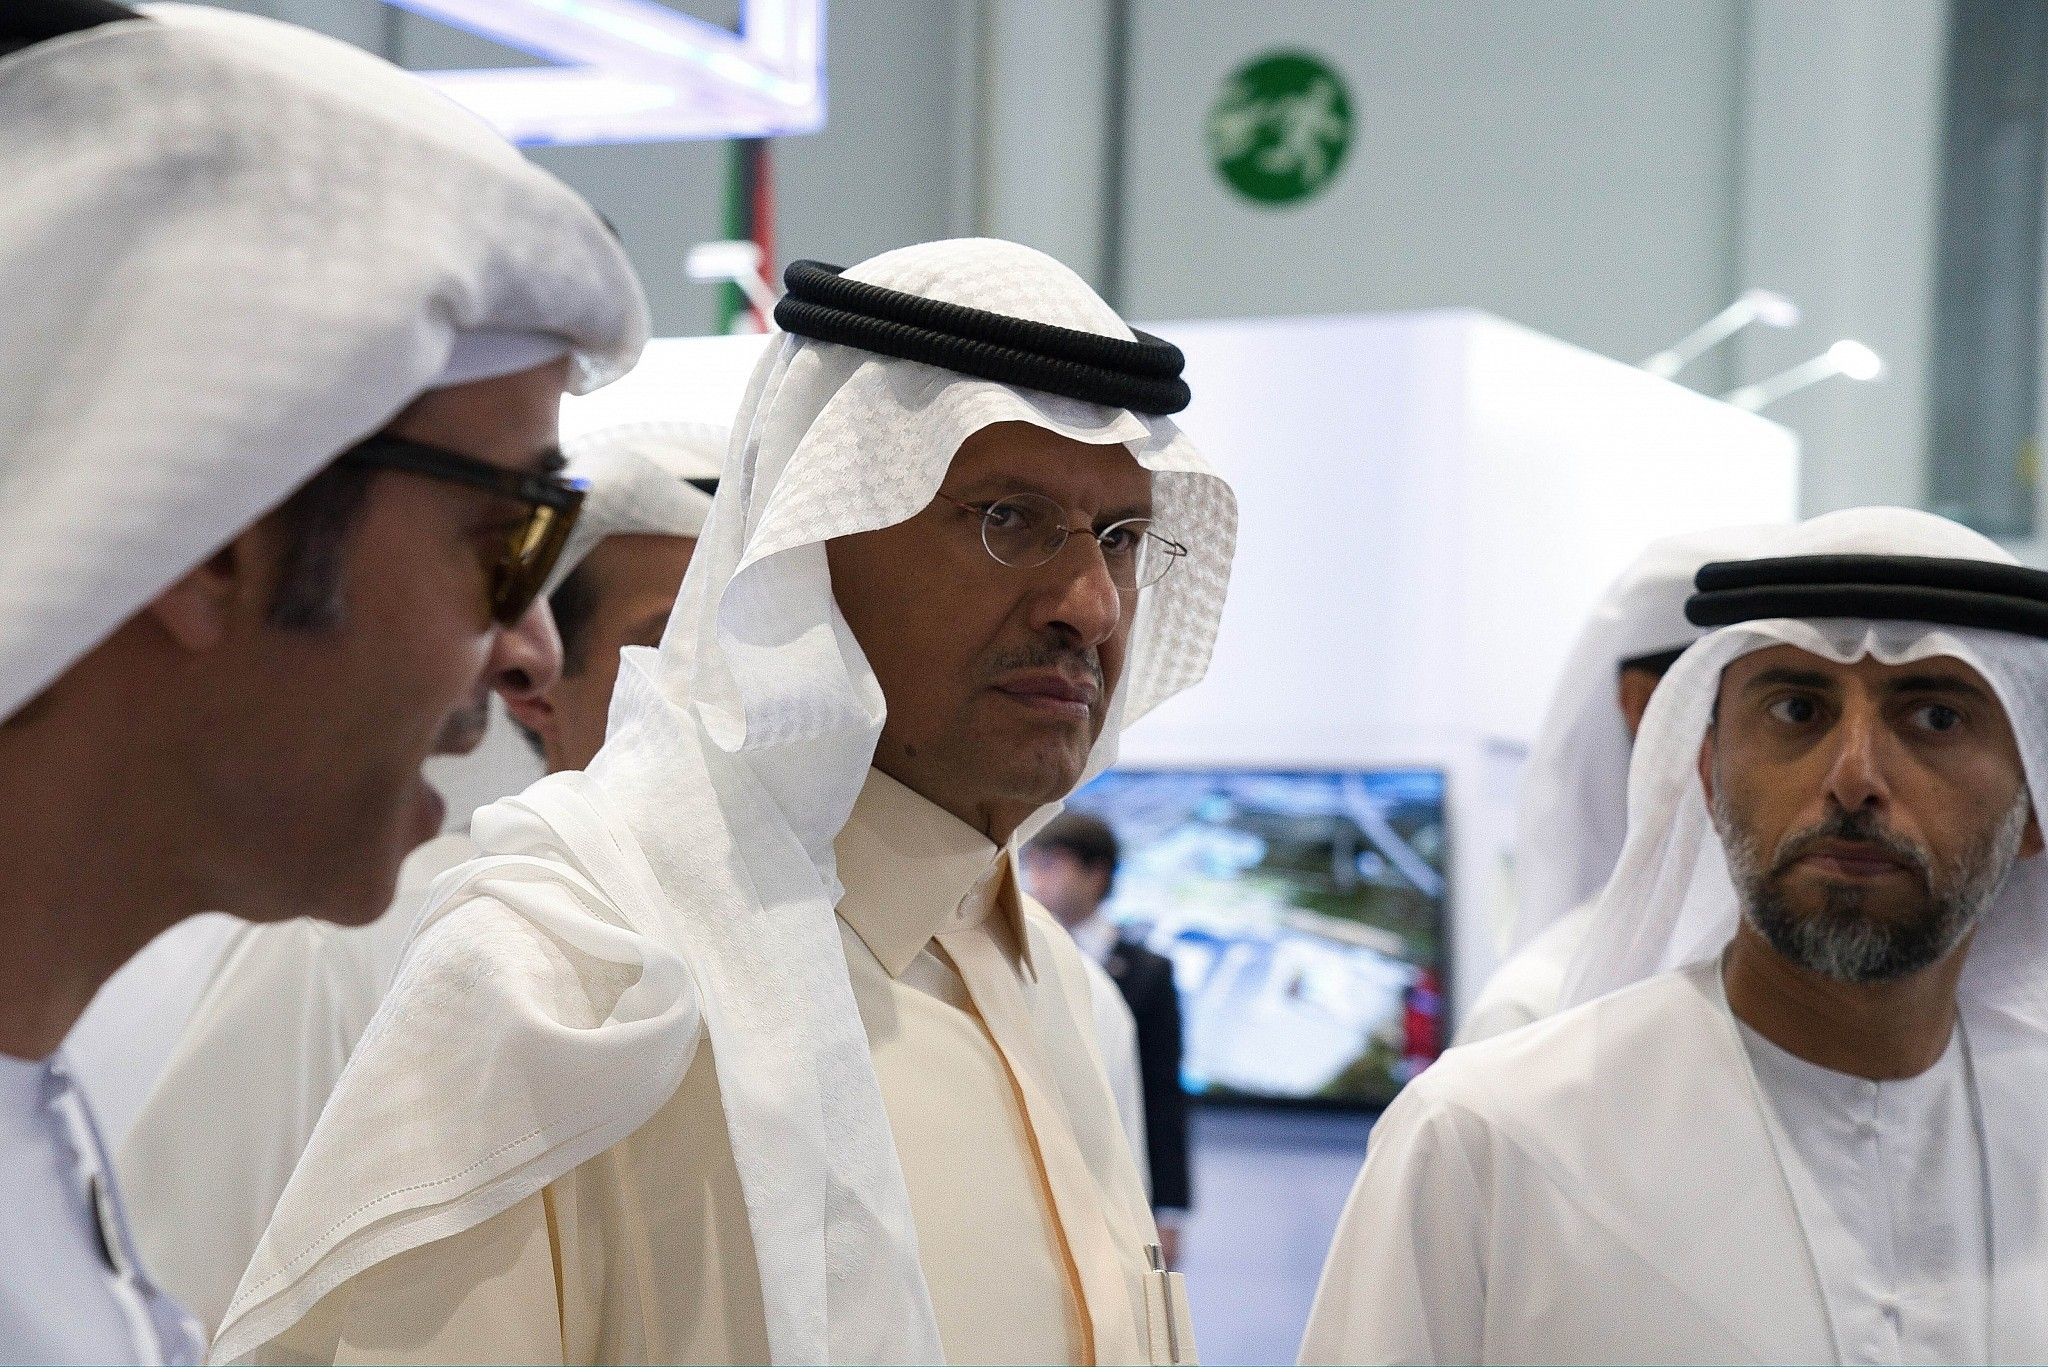 Saudi Arabia's new Energy Minister Prince Abdulaziz bin Salman center and United Arab Emirates Energy Minister Suhail al-Mazrouei right walk through an energy exhibition in Abu Dhabi United Arab Emirates Septembre 9 2019